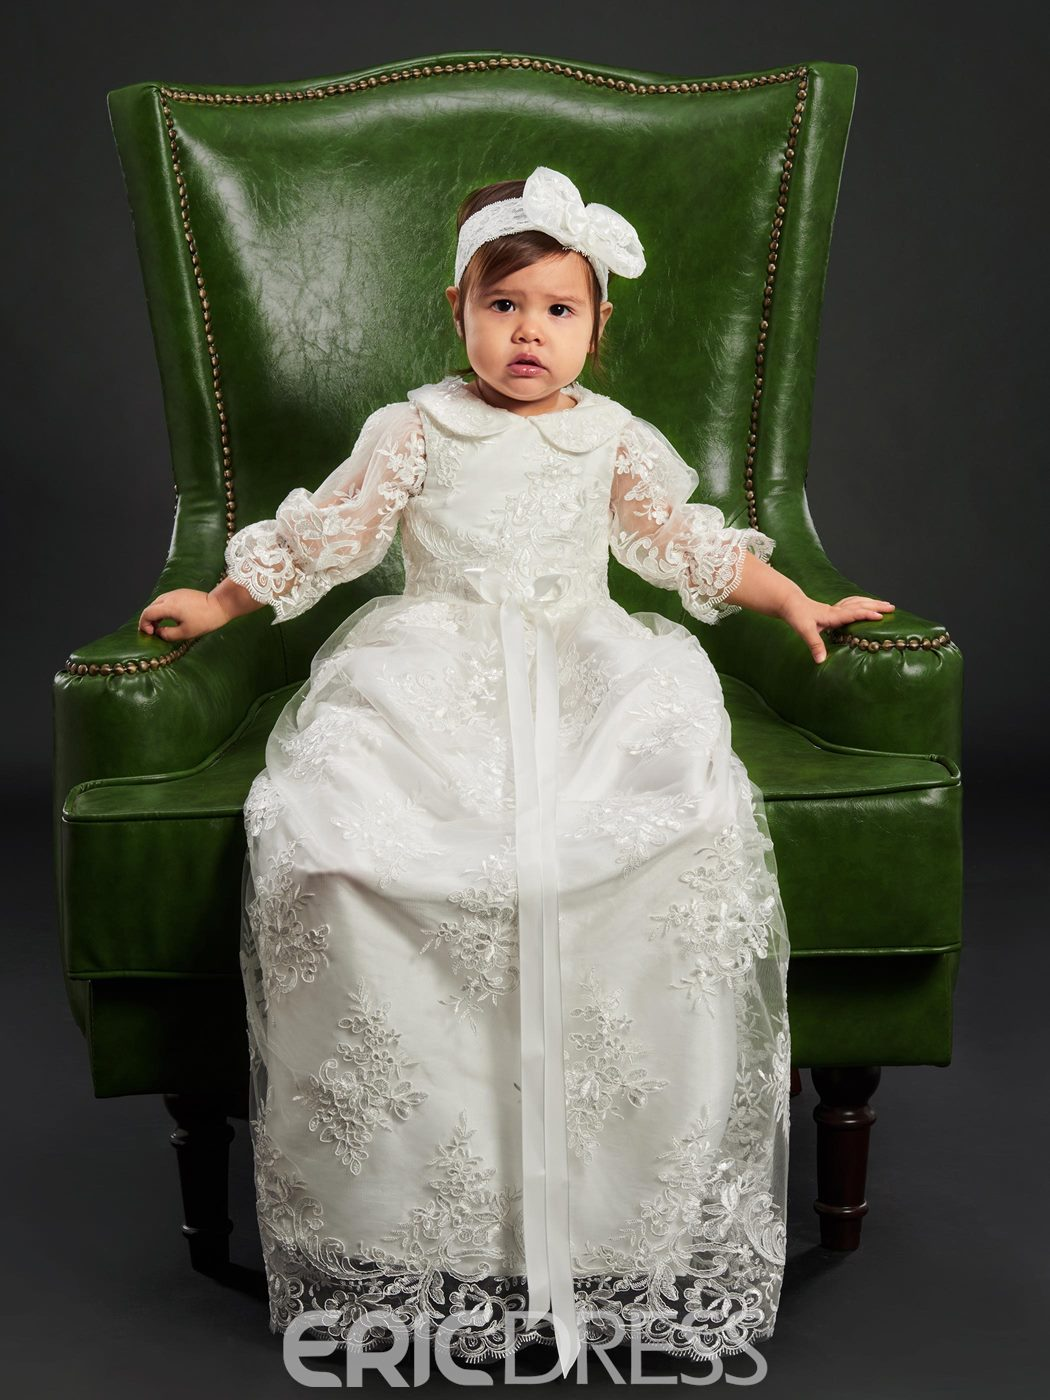 Ericdress Long Lace Tulle Headband Christening Gown for Baptism Girls